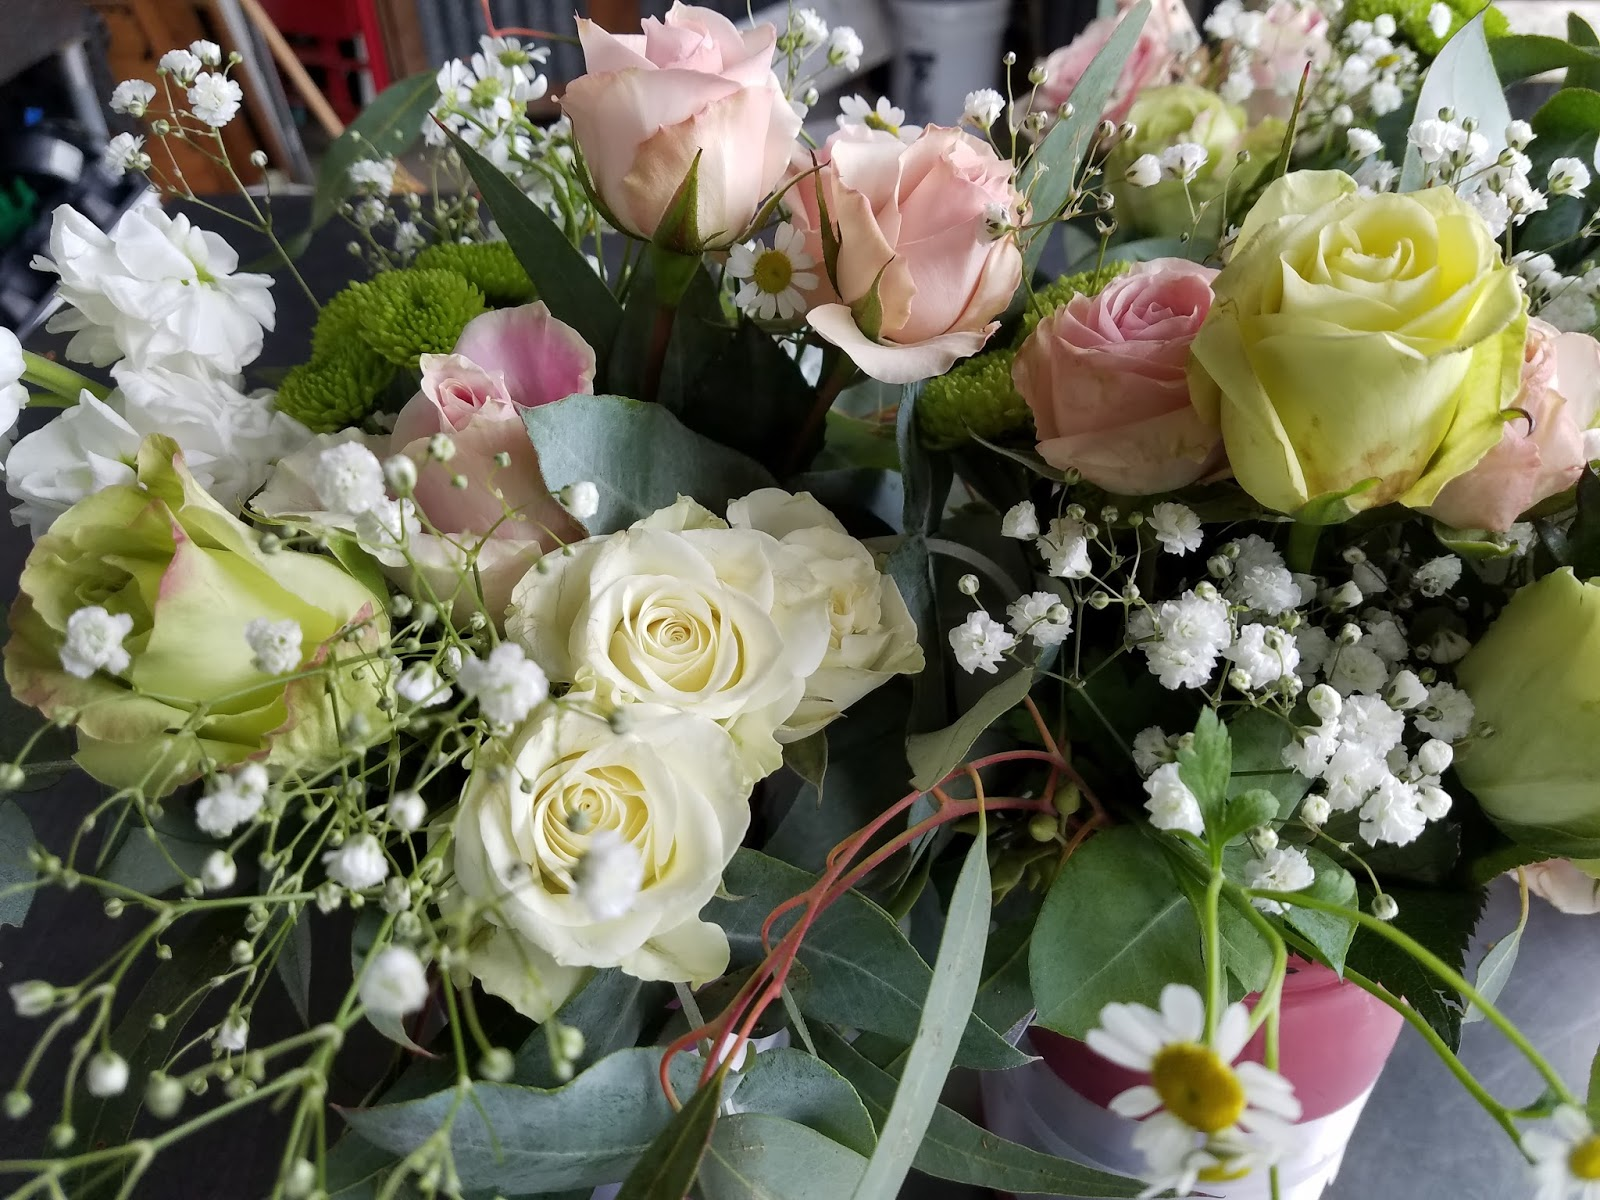 Windmill Farm: NOVEMBER WEDDING FLOWERS; WHAT HAPPENED TO